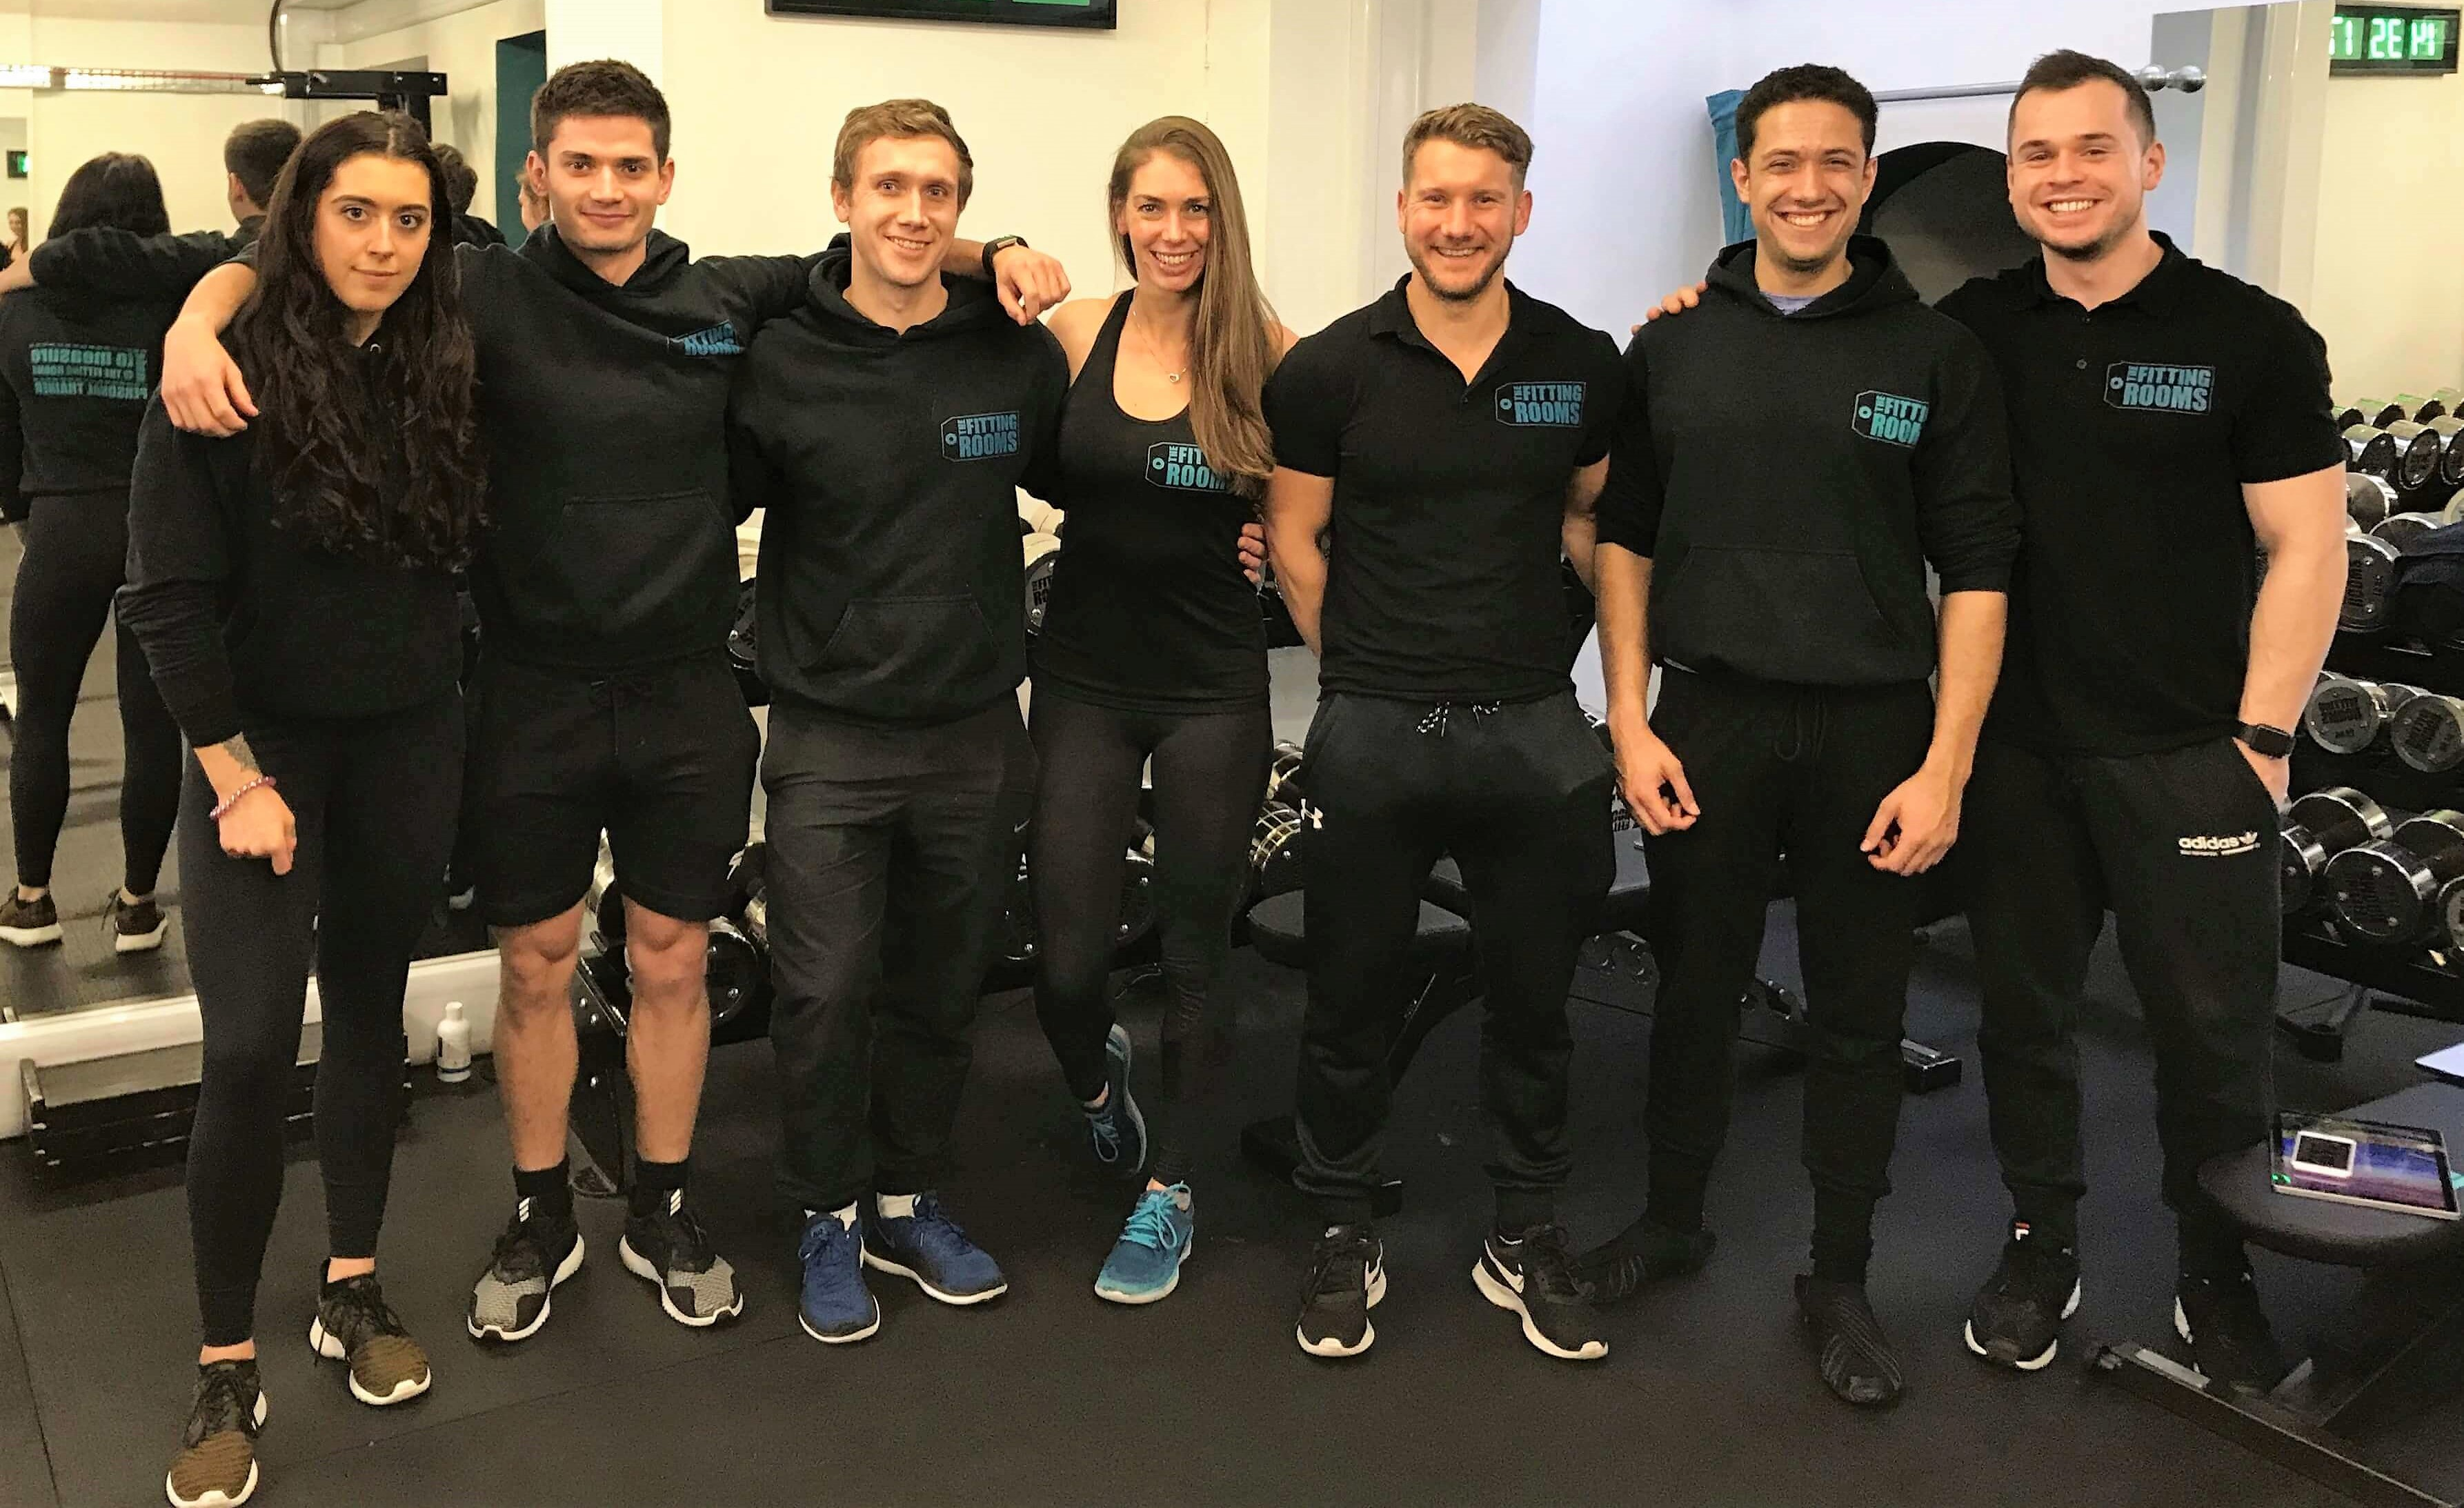 The Fitting Rooms Personal Trainers in London Bridge 2018